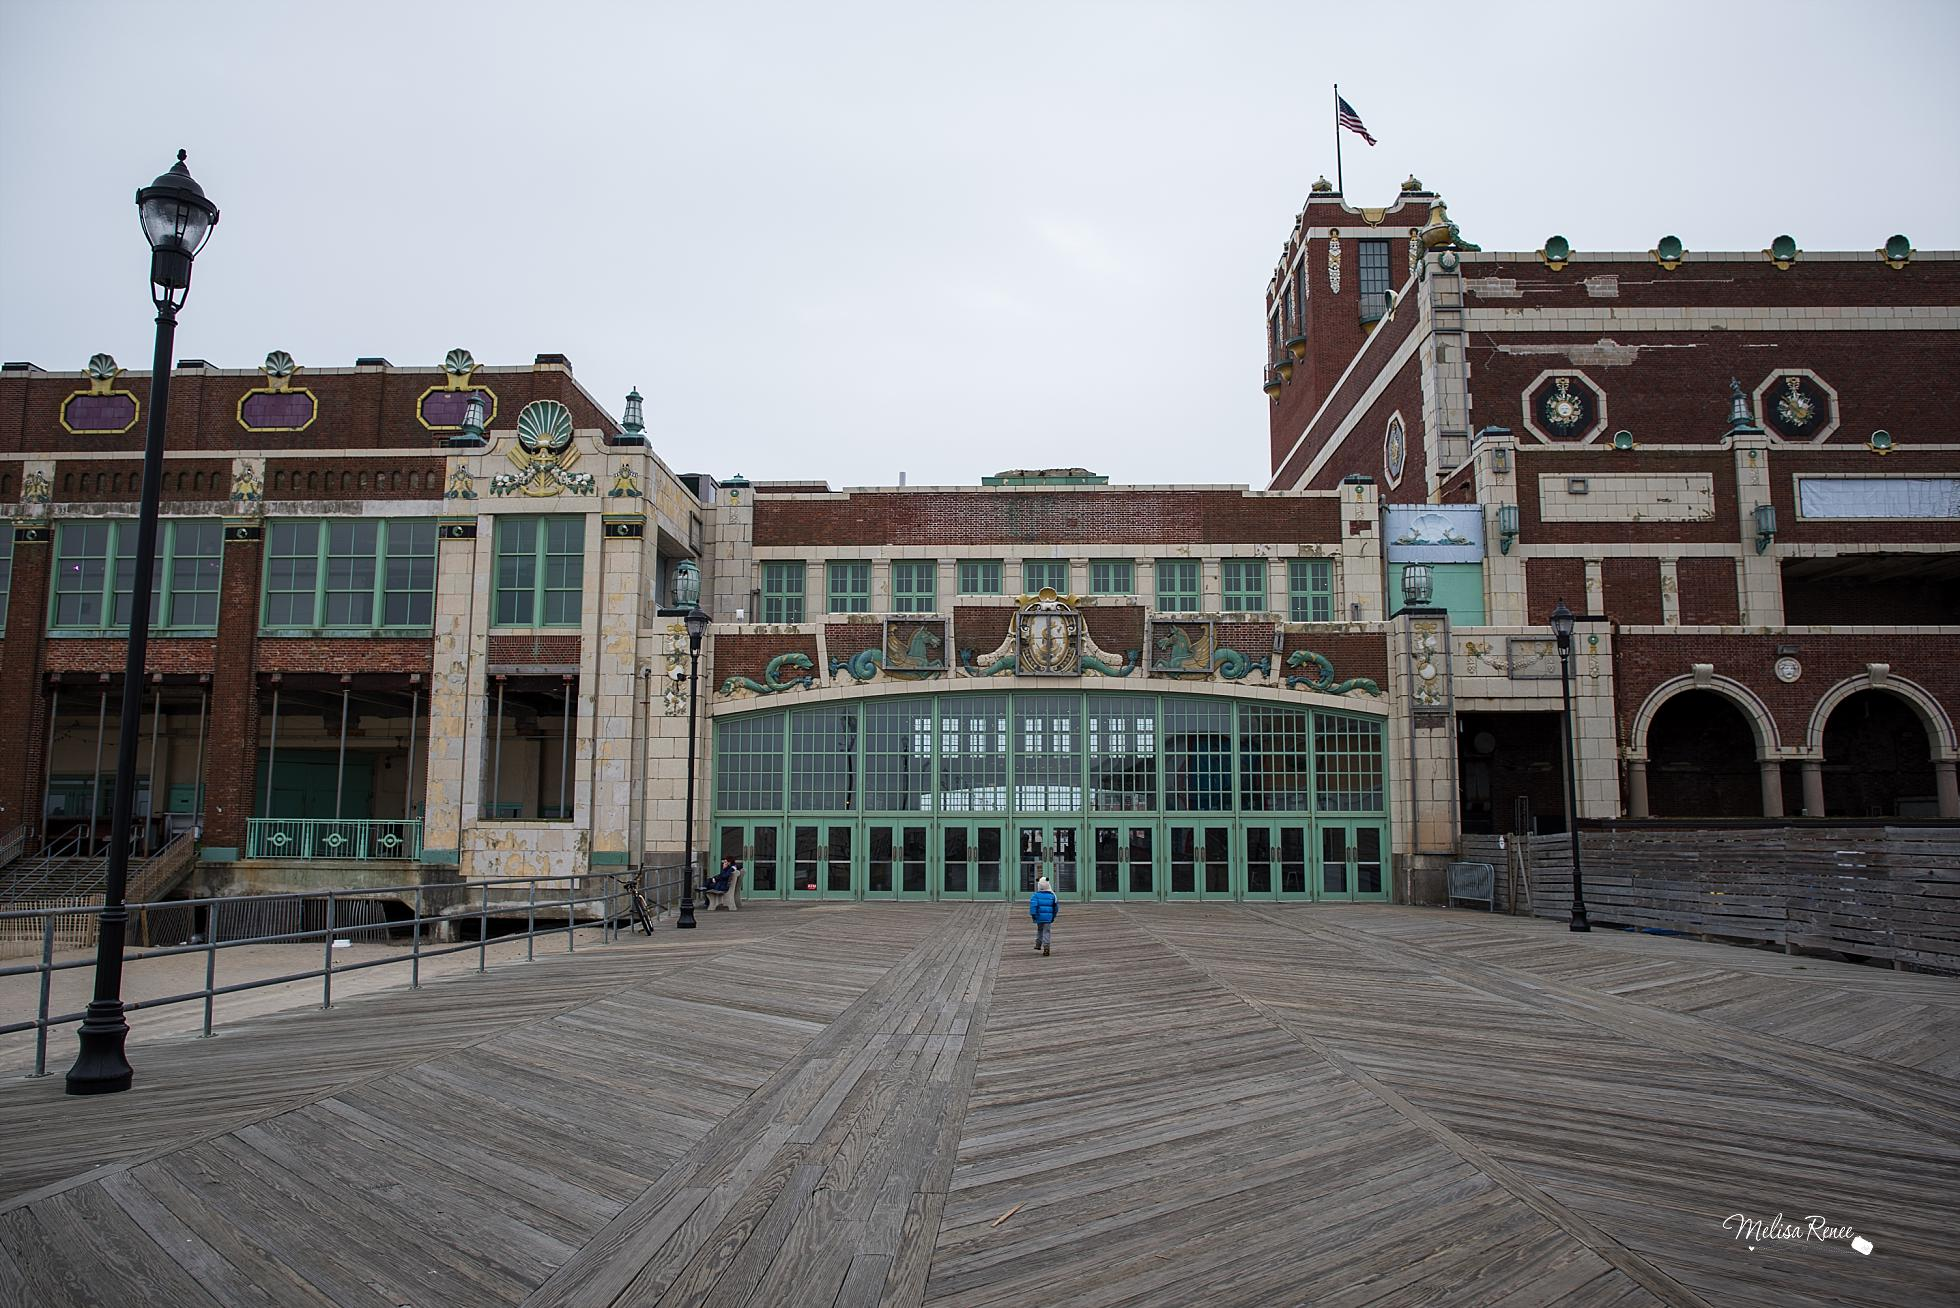 Greetings From Asbury Park By Melisa Anger